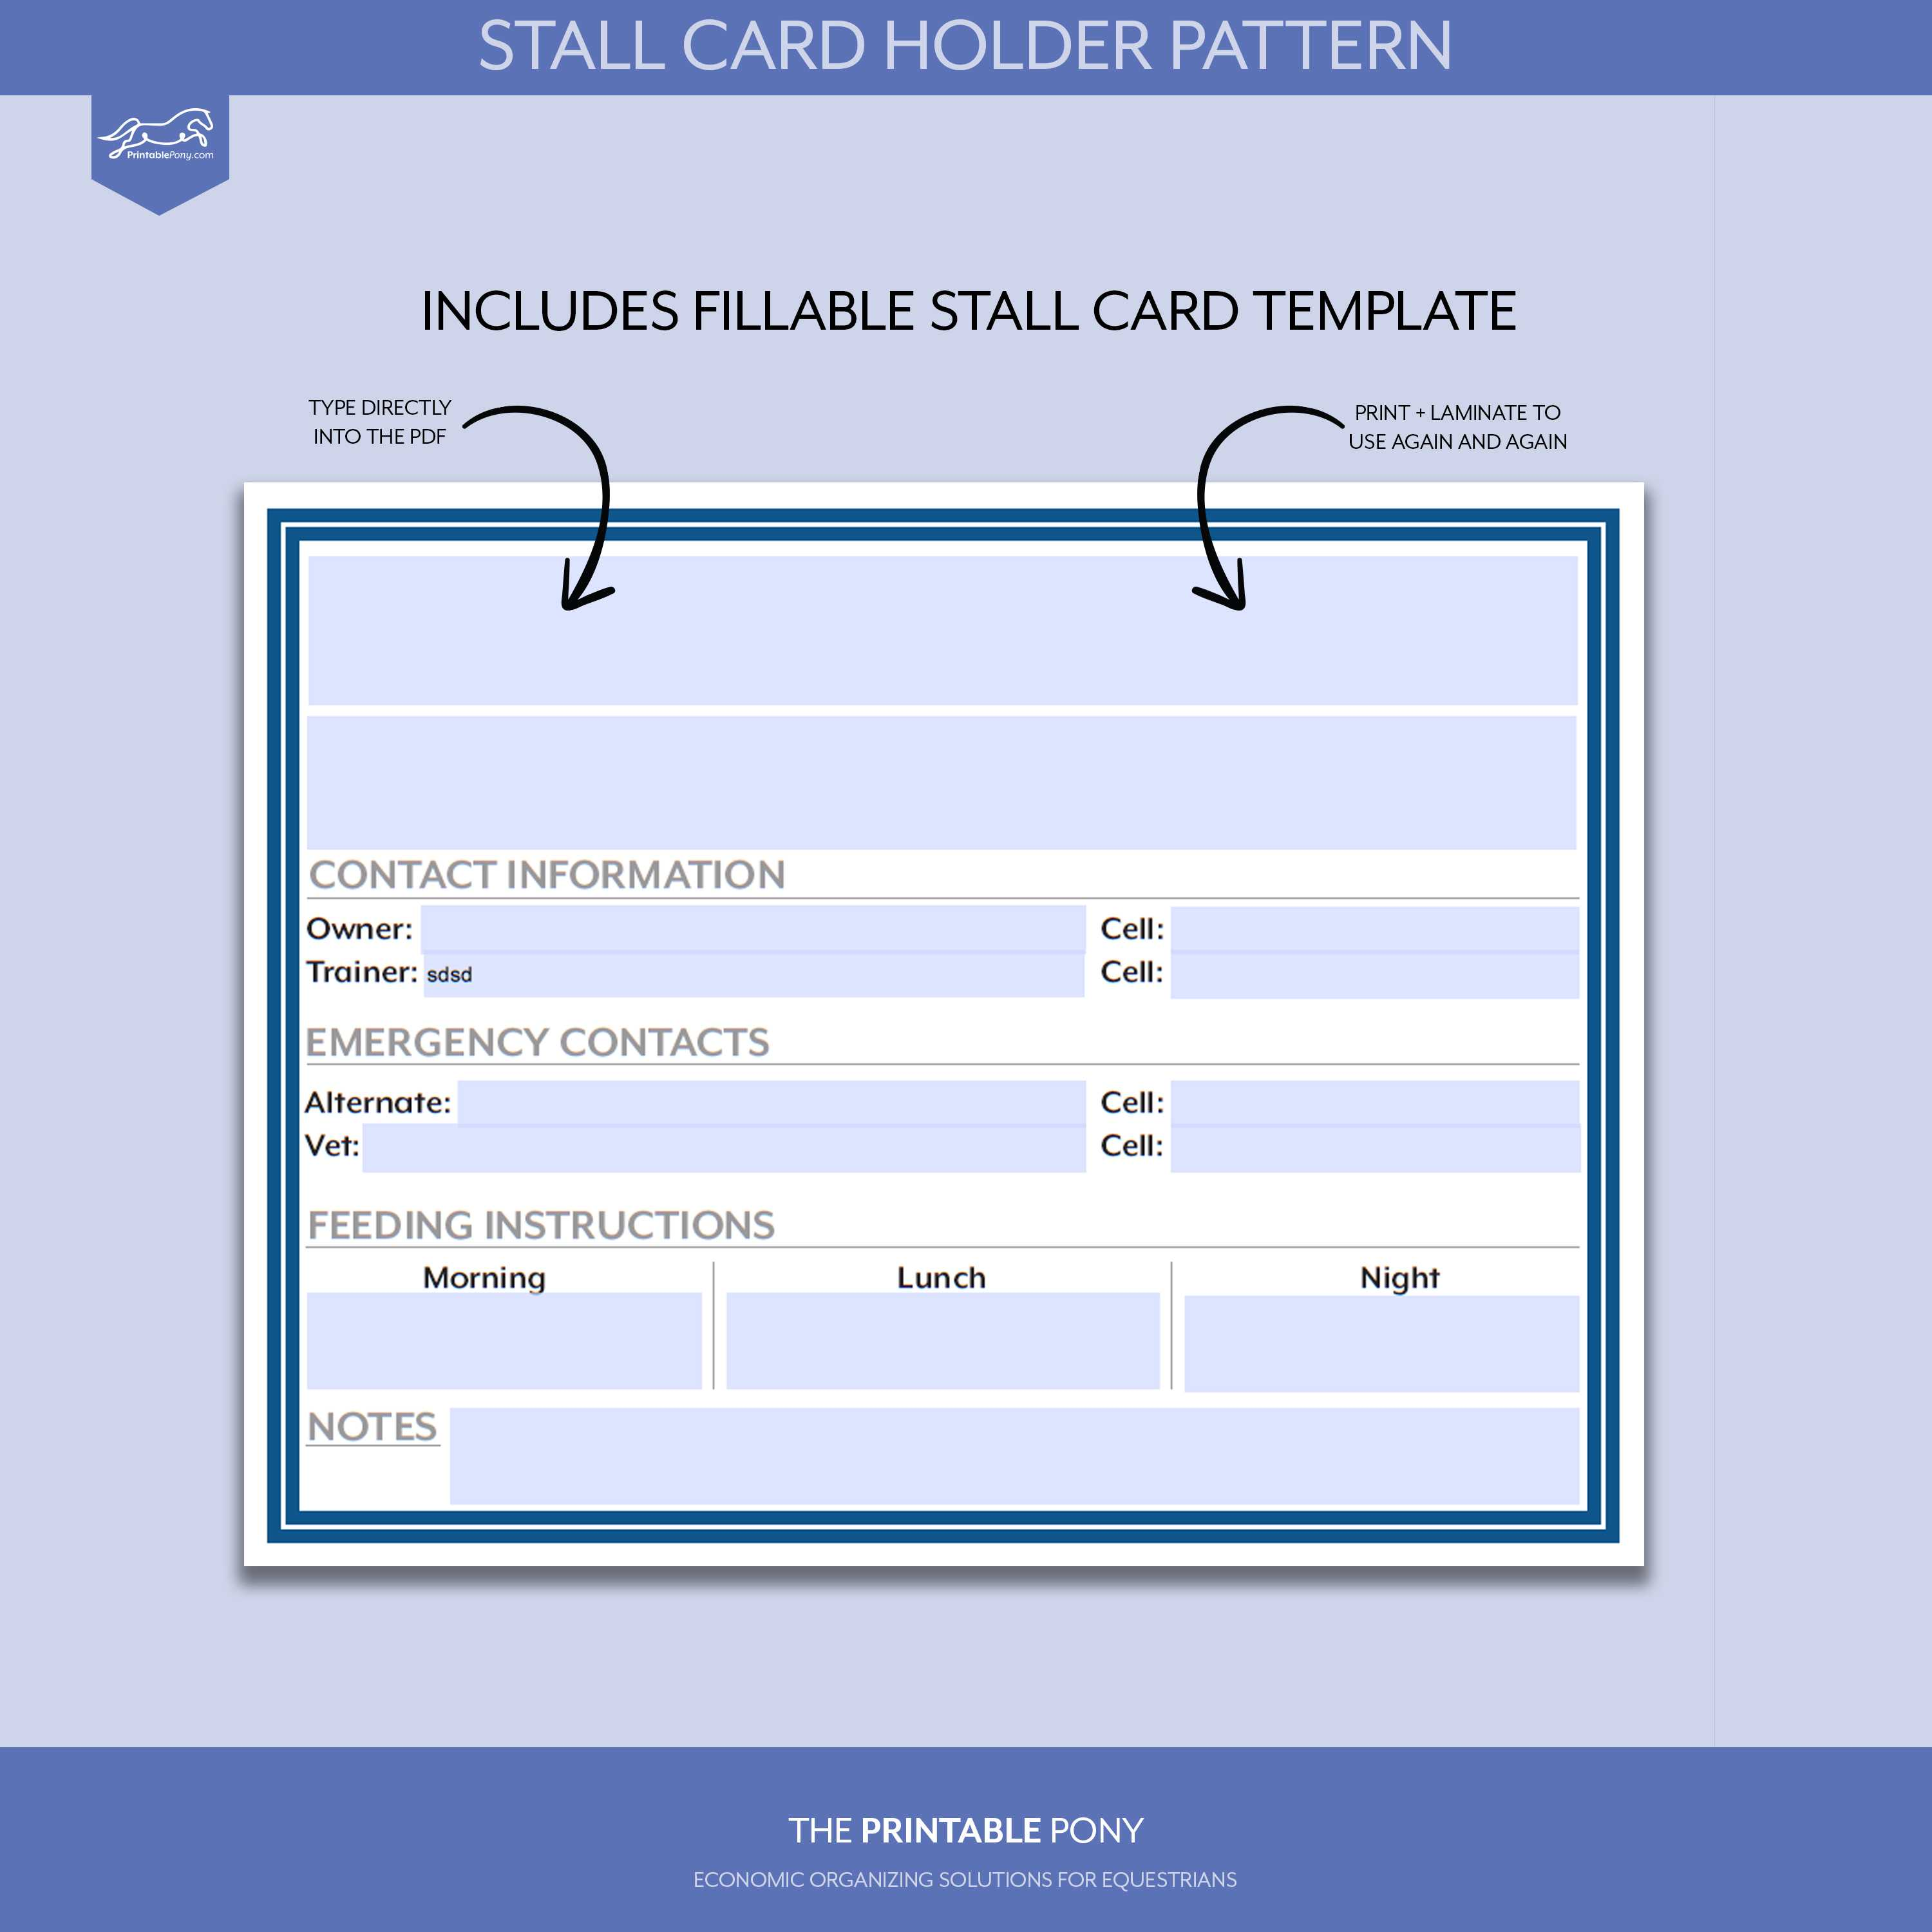 Stall Card Holder Pattern + Printable Stall Card Regarding Horse Stall Card Template